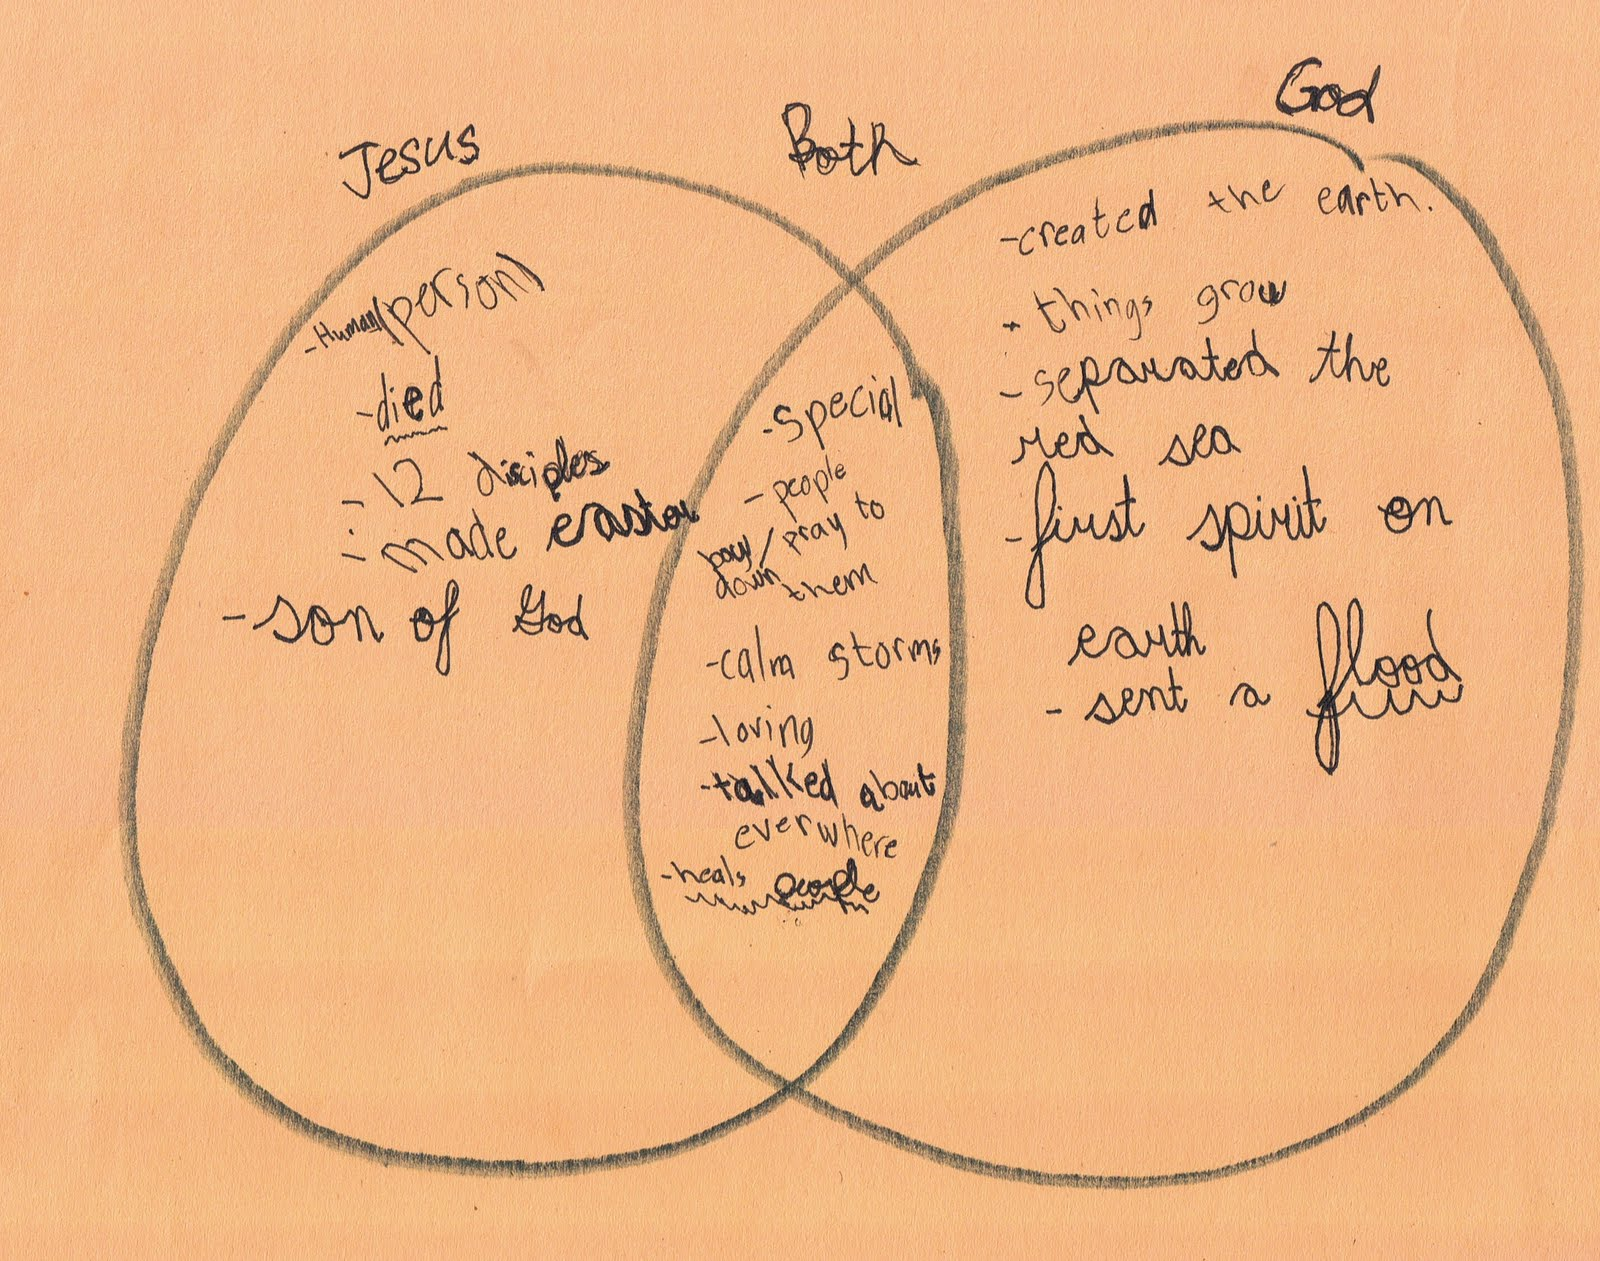 medium resolution of then my older daughter recommended putting it all into a venn diagram to figure out if in fact god and jesus were the same this is what they came up with